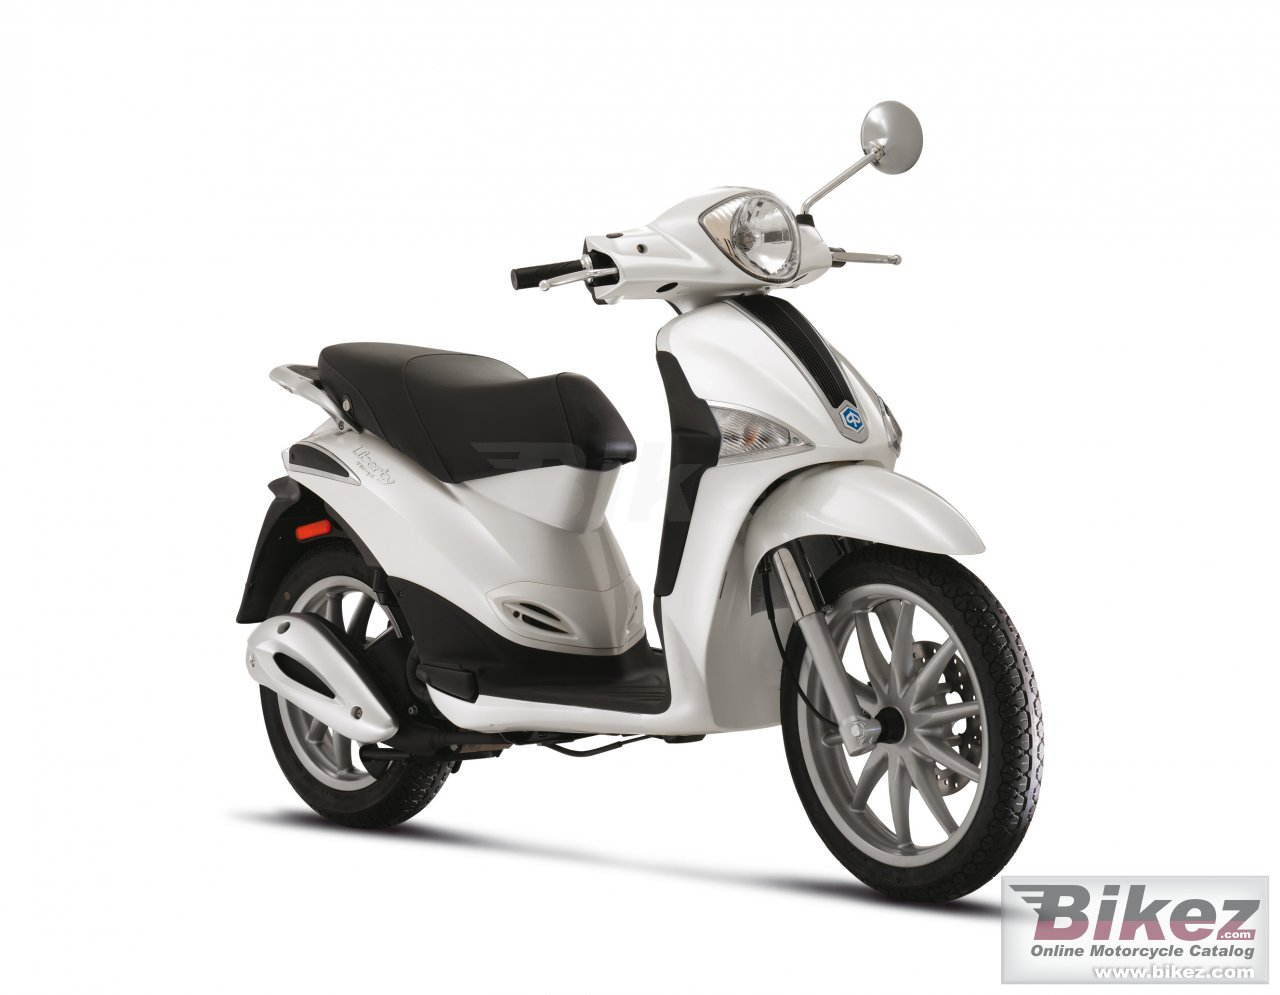 Big Piaggio liberty 50 picture and wallpaper from Bikez.com